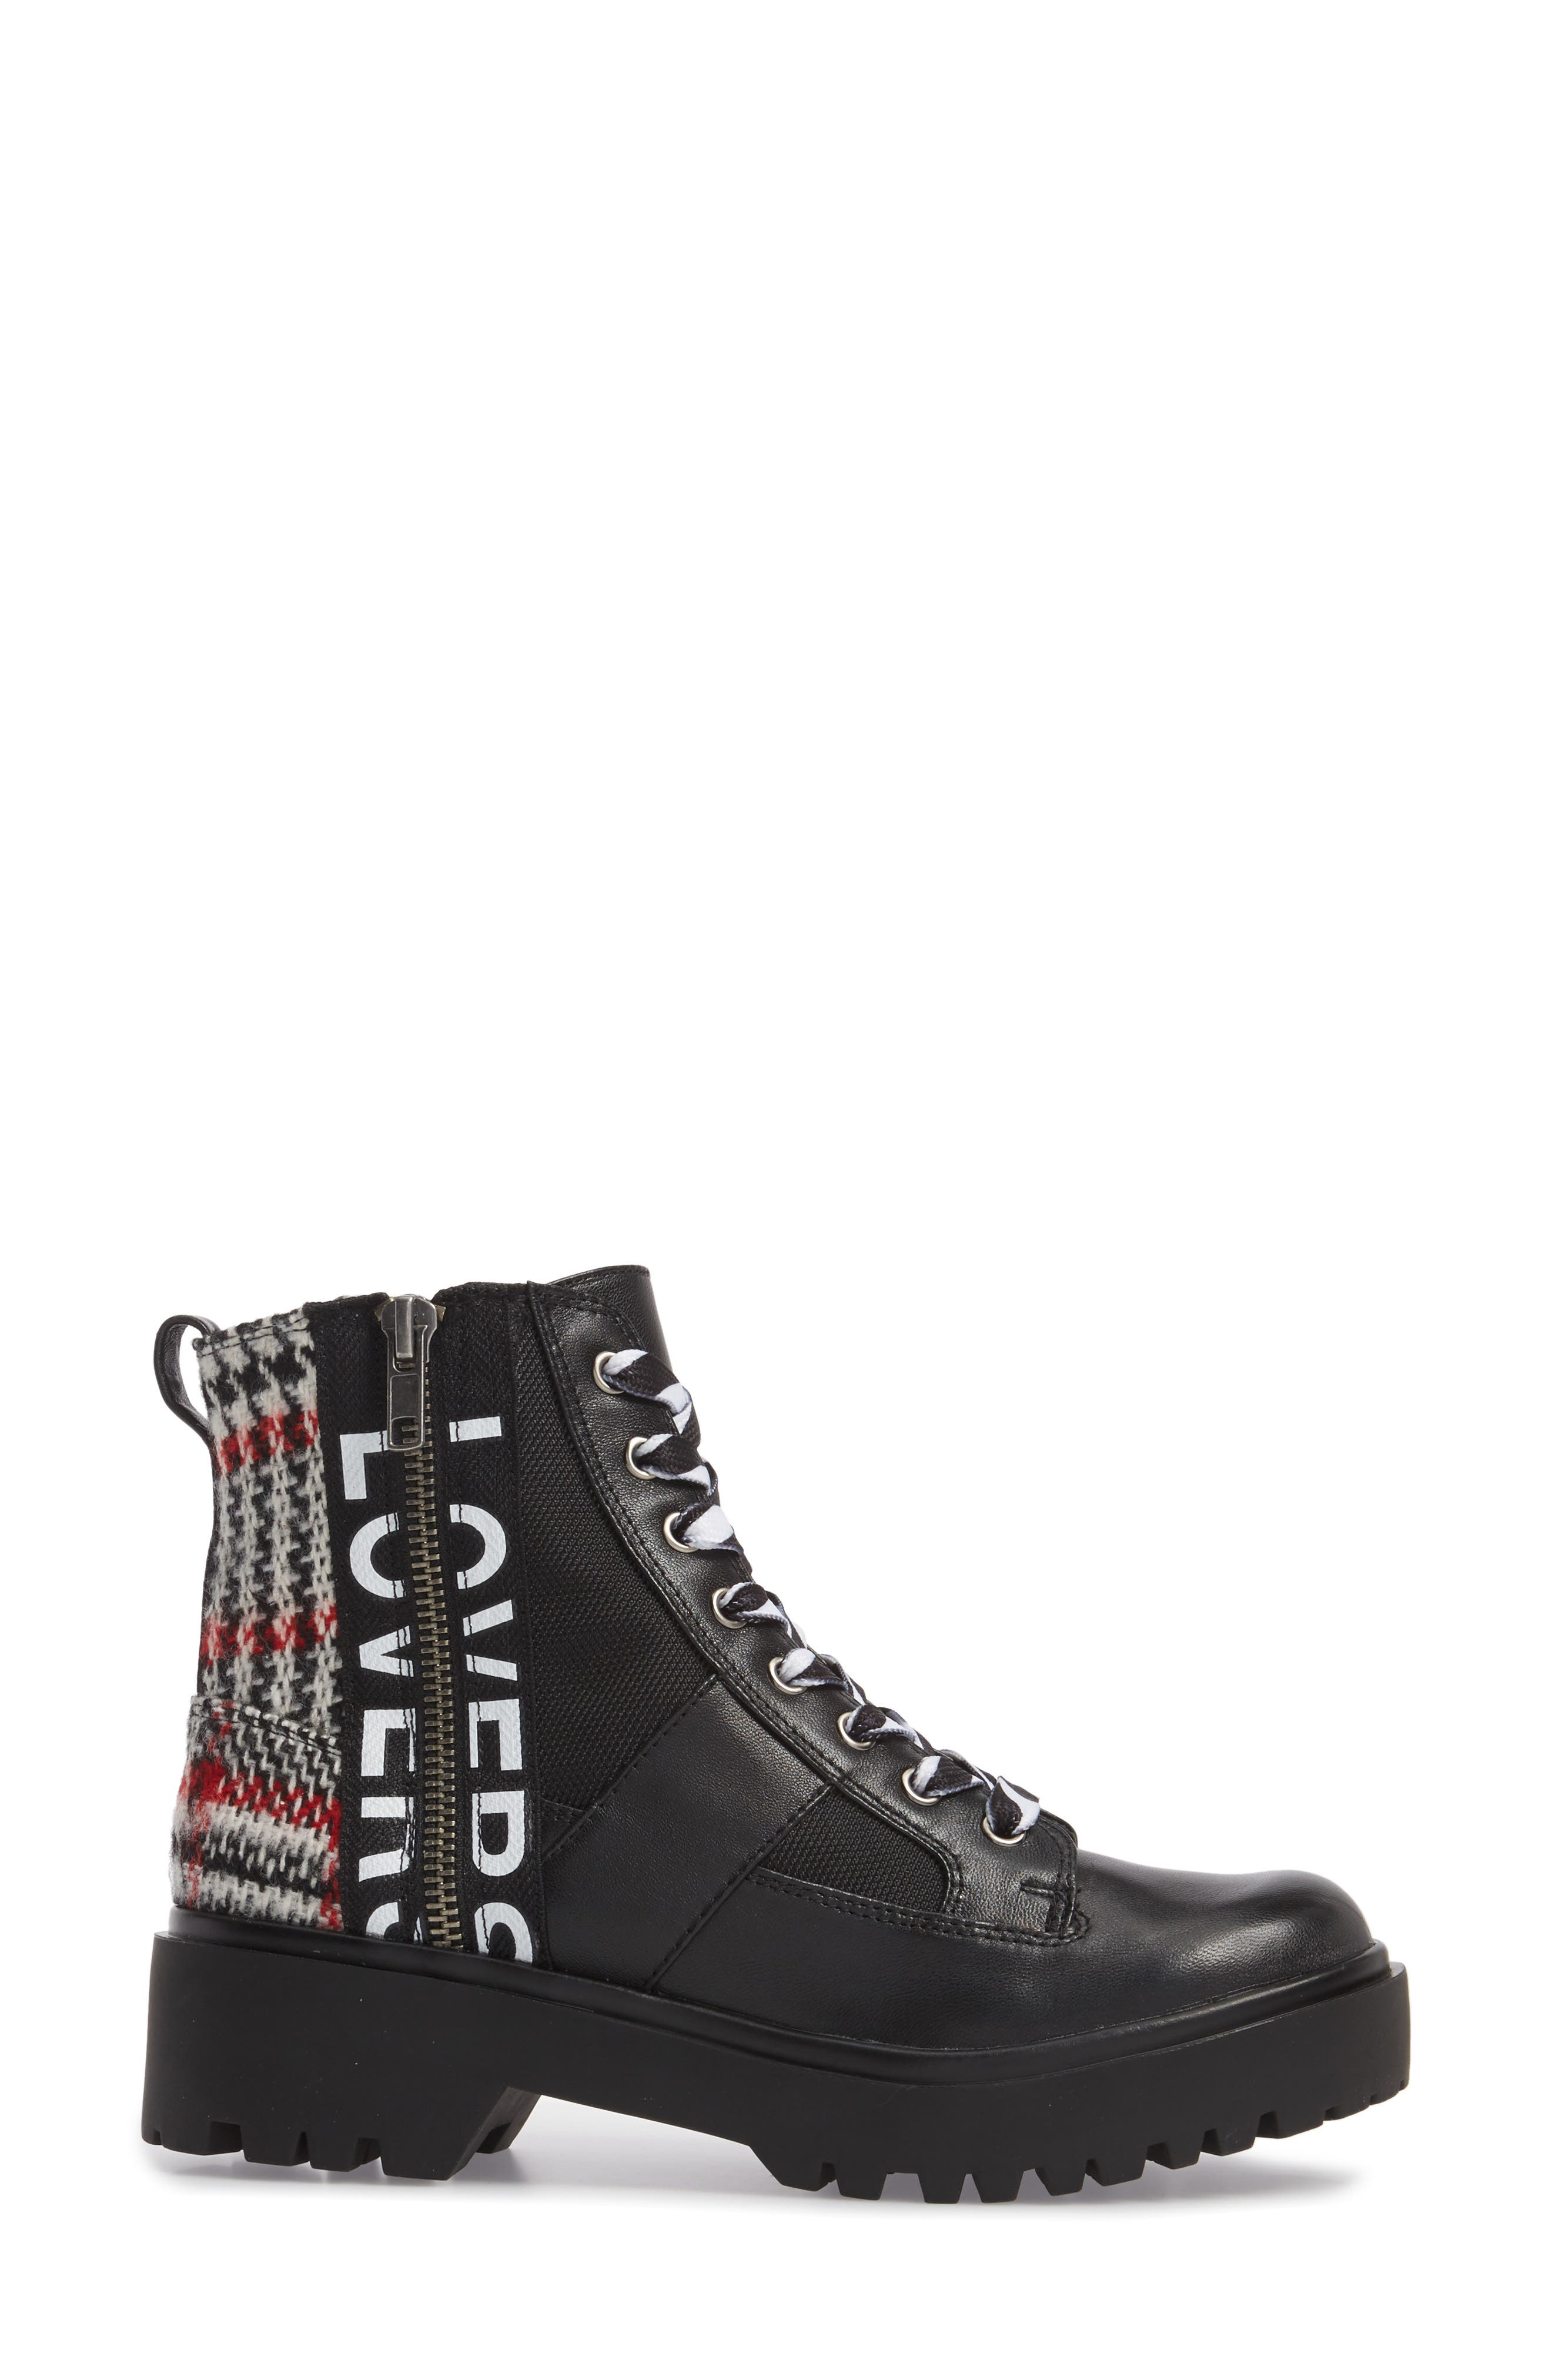 Lennox Combat Boot,                             Alternate thumbnail 3, color,                             Black Multi